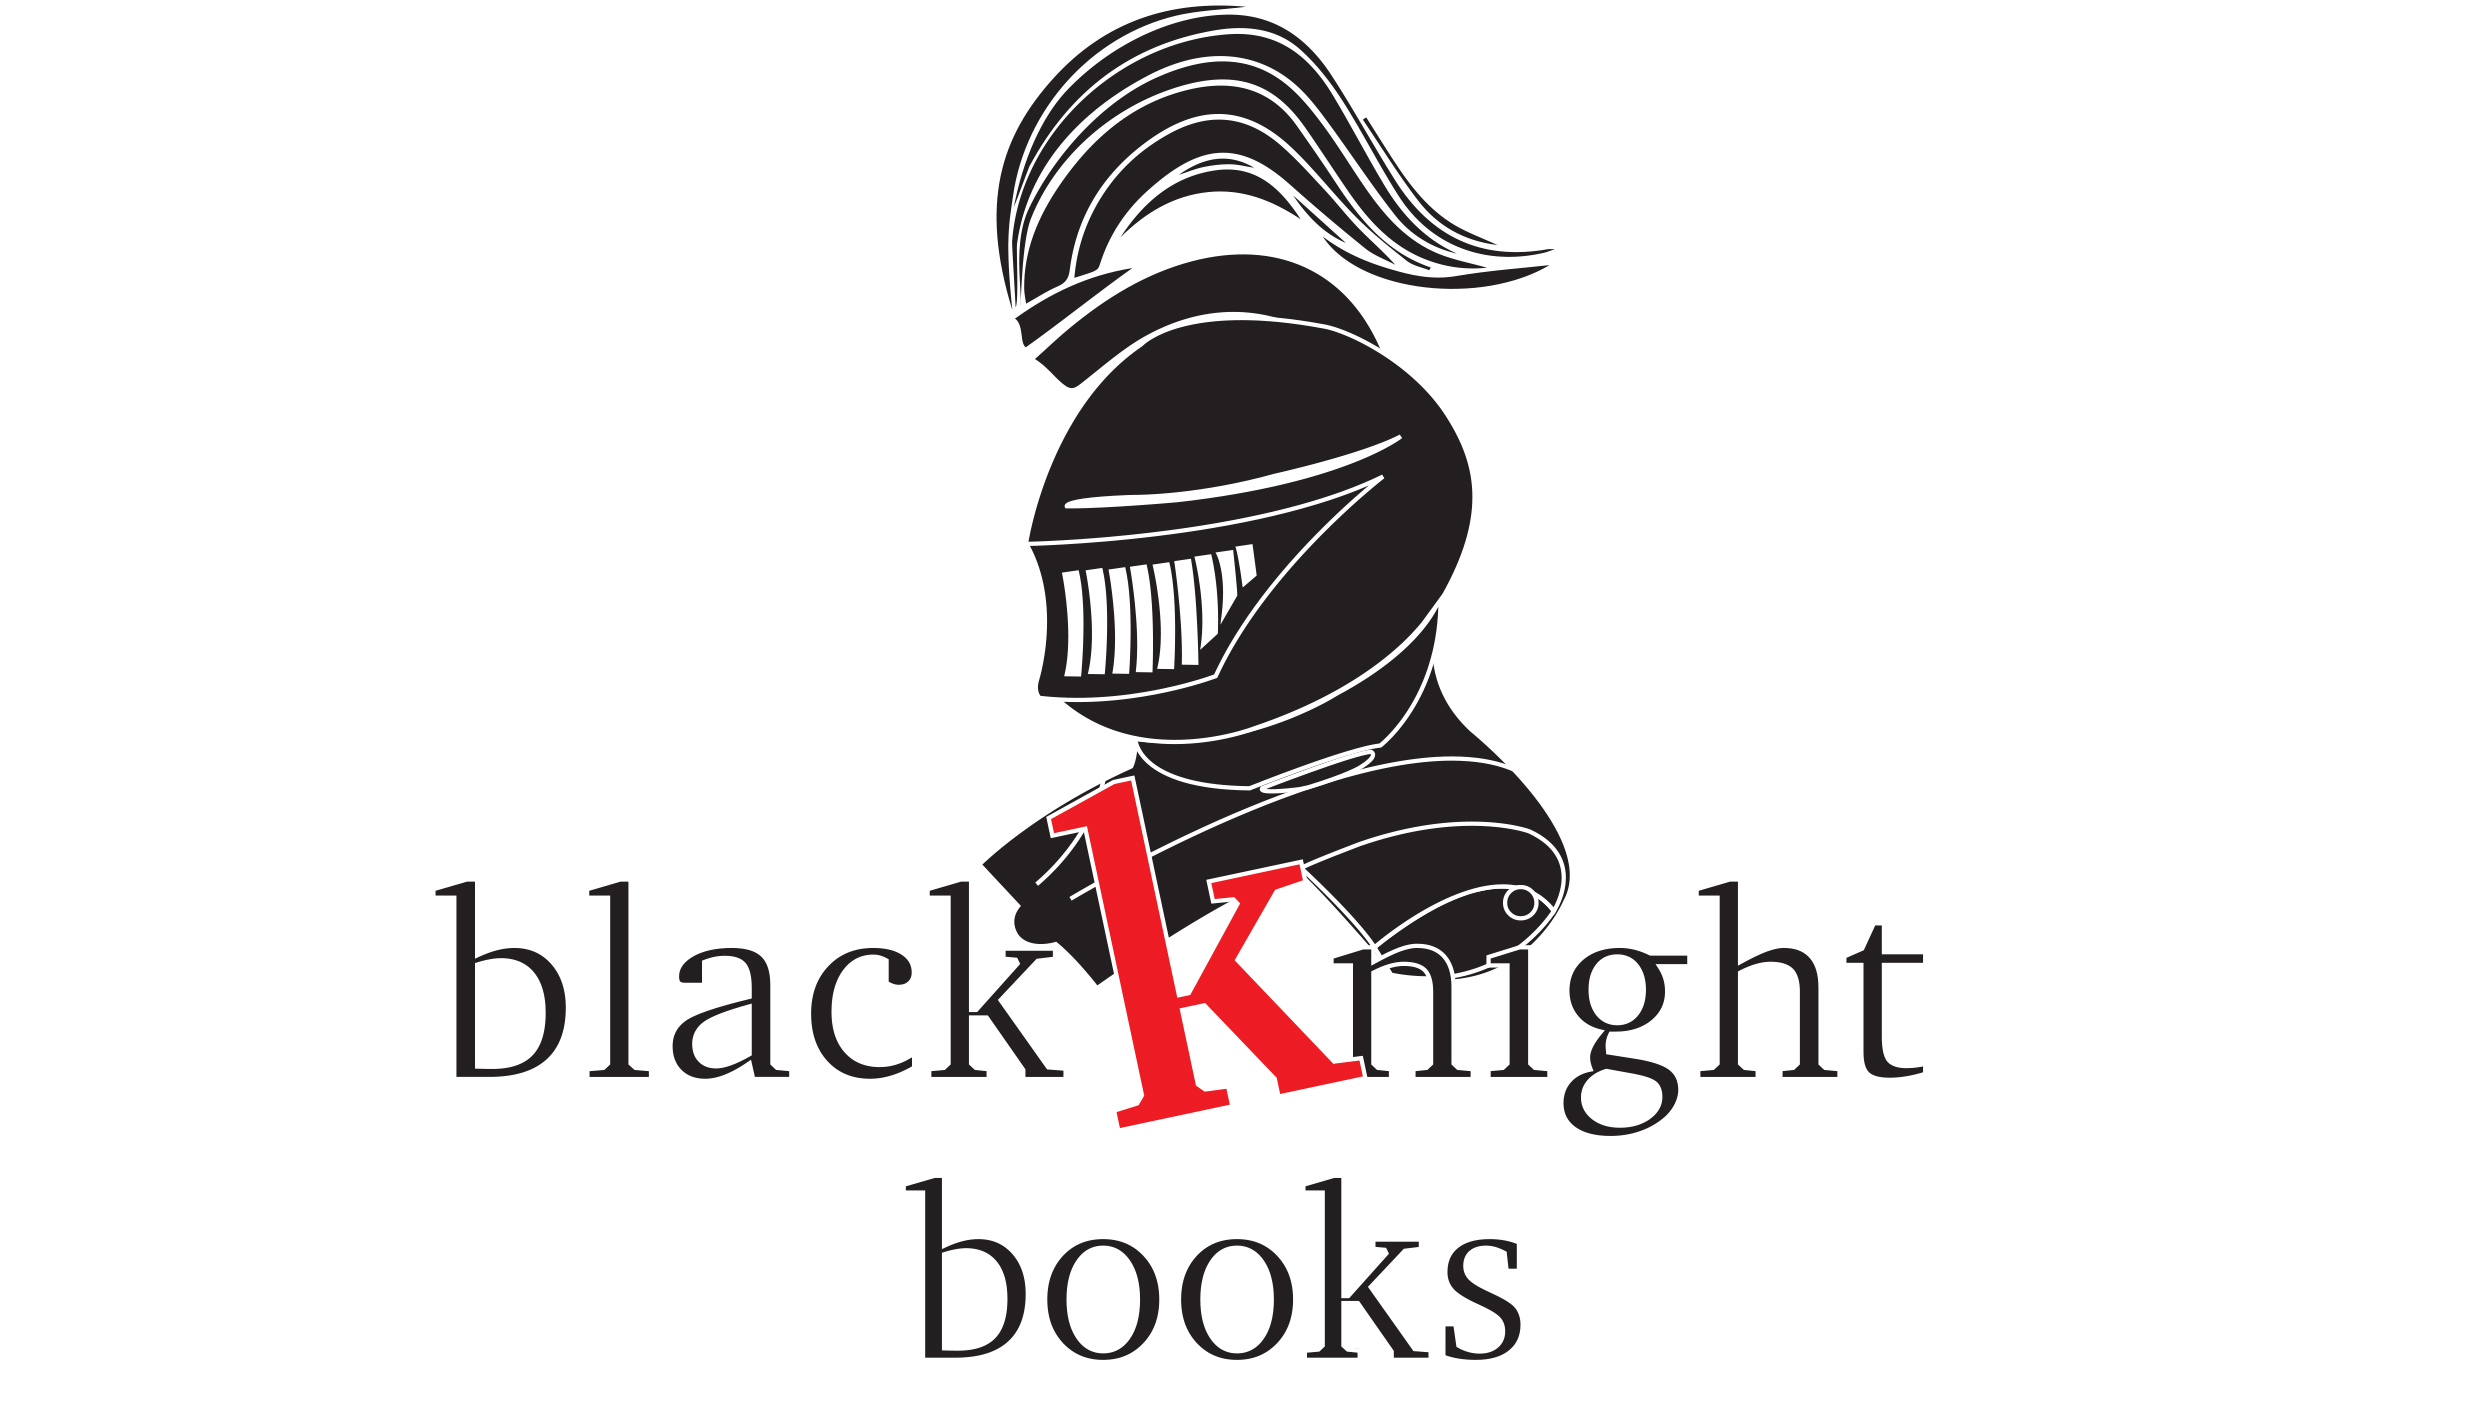 Black Knight Books